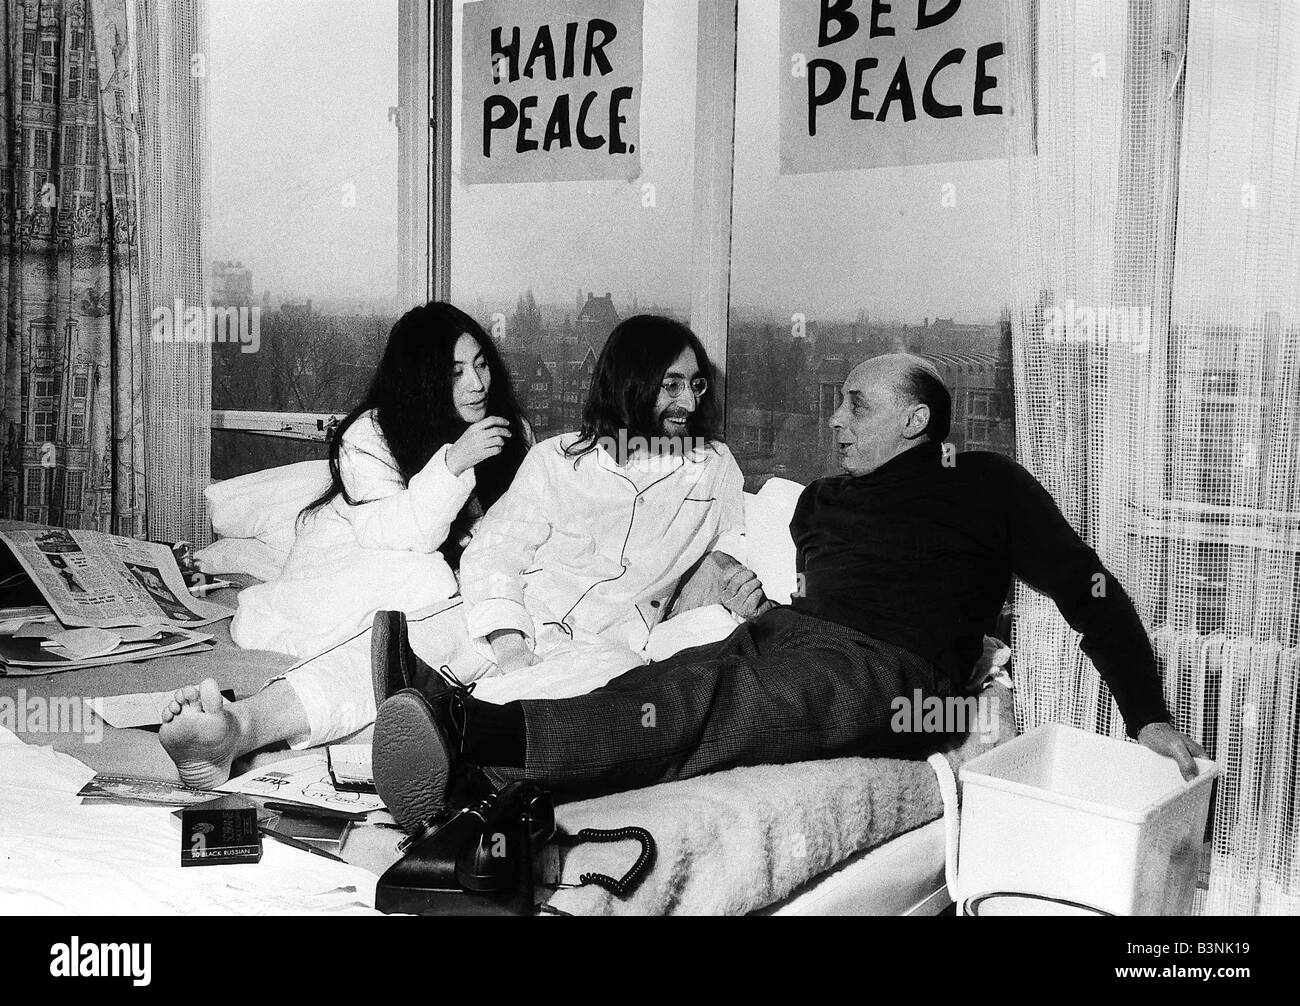 John Lennon Of The Beatles In Bed With Yoko Ono At The Hilton Hotel Stock Photo Alamy